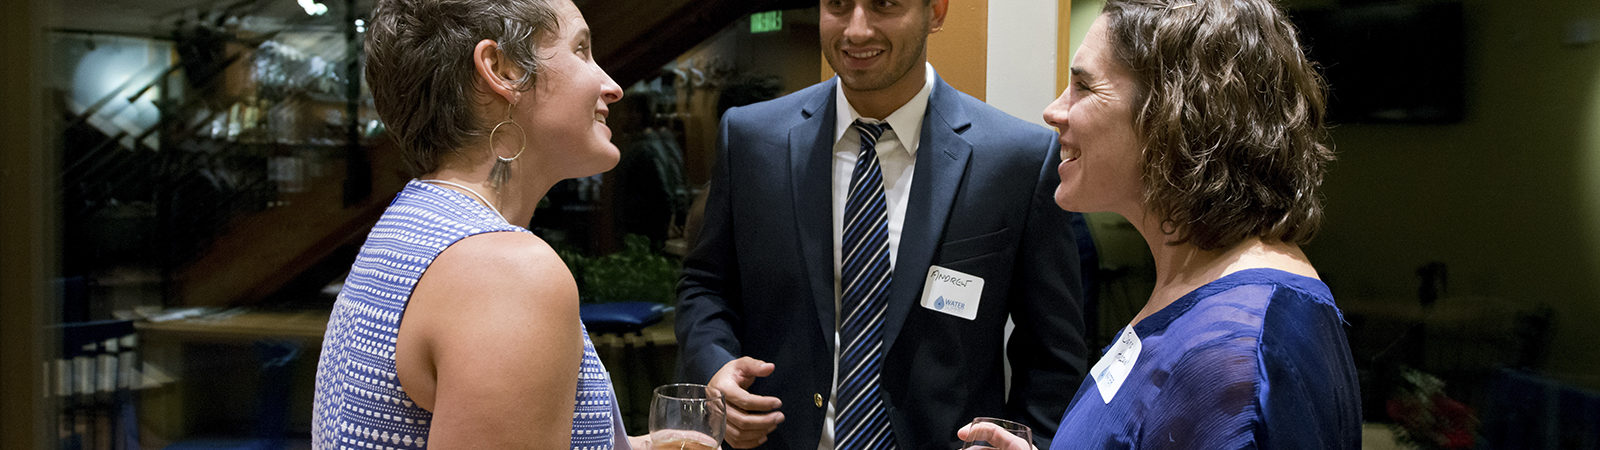 Northland networking event